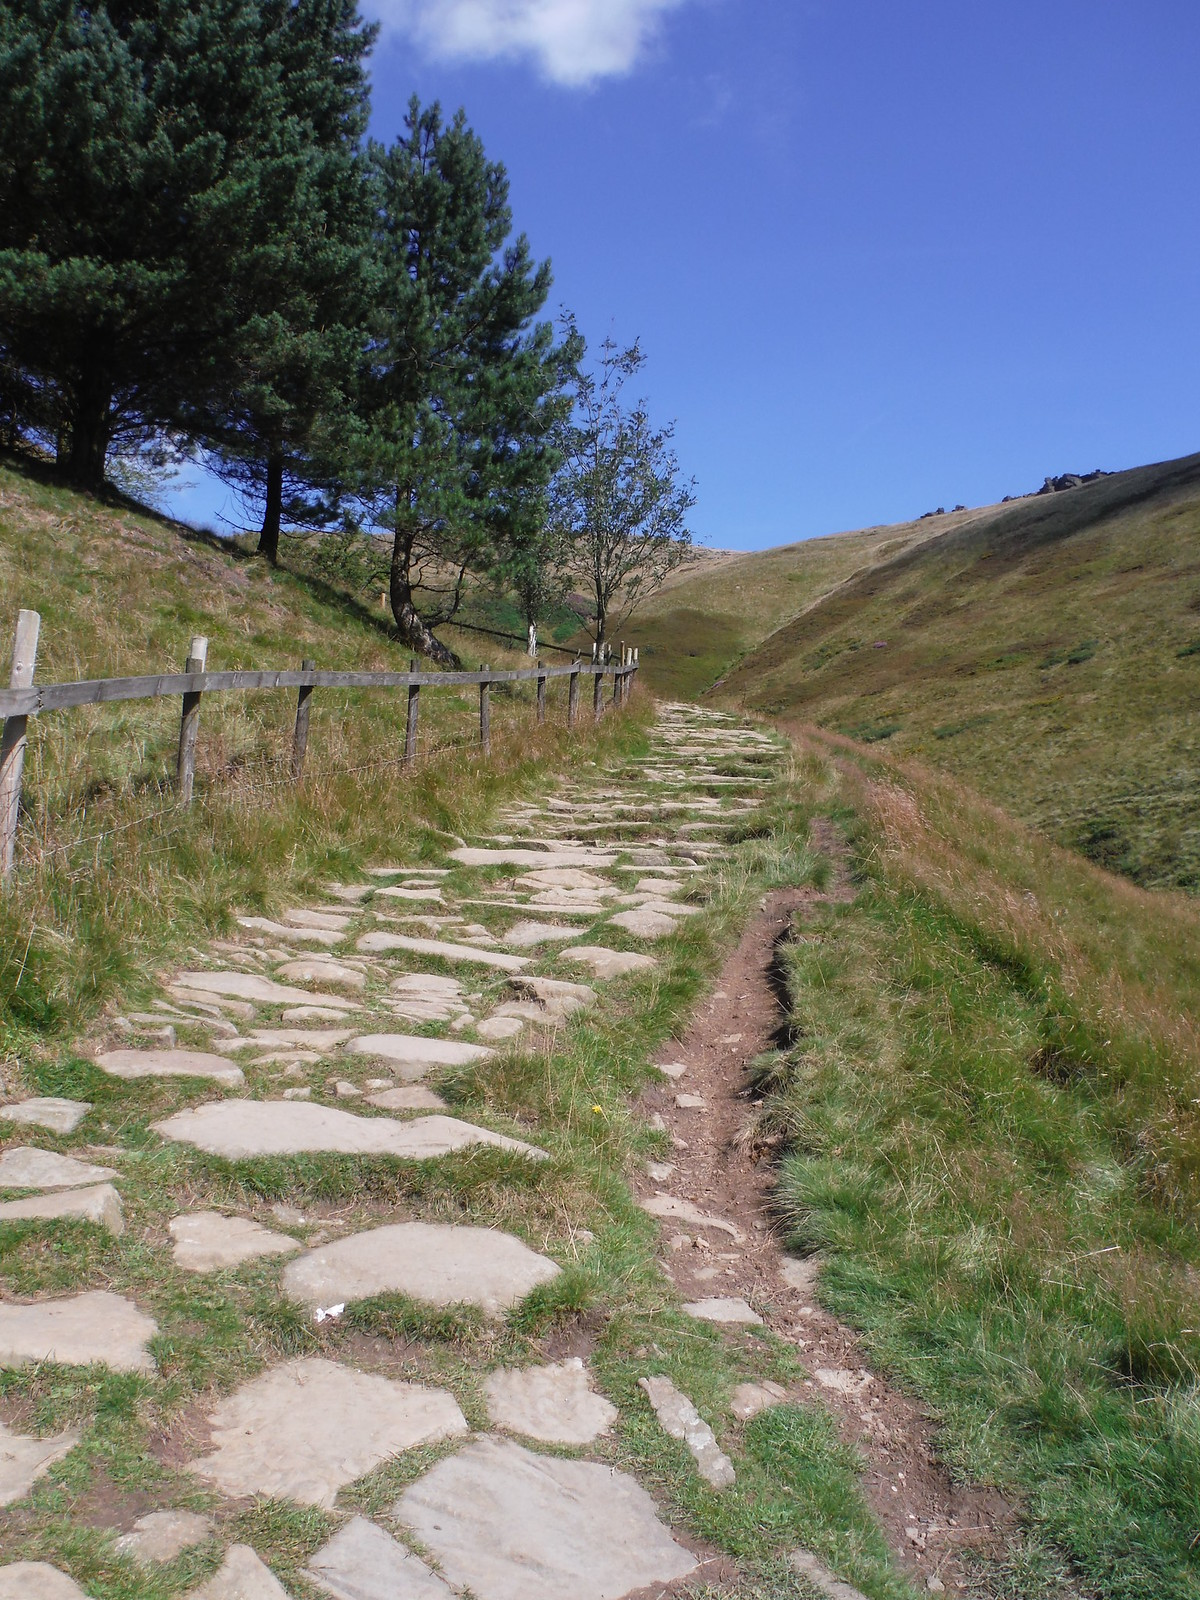 Jacob's Ladder and Wool Packs SWC Walk 303 - Edale Circular (via Kinder Scout and Mam Tor)